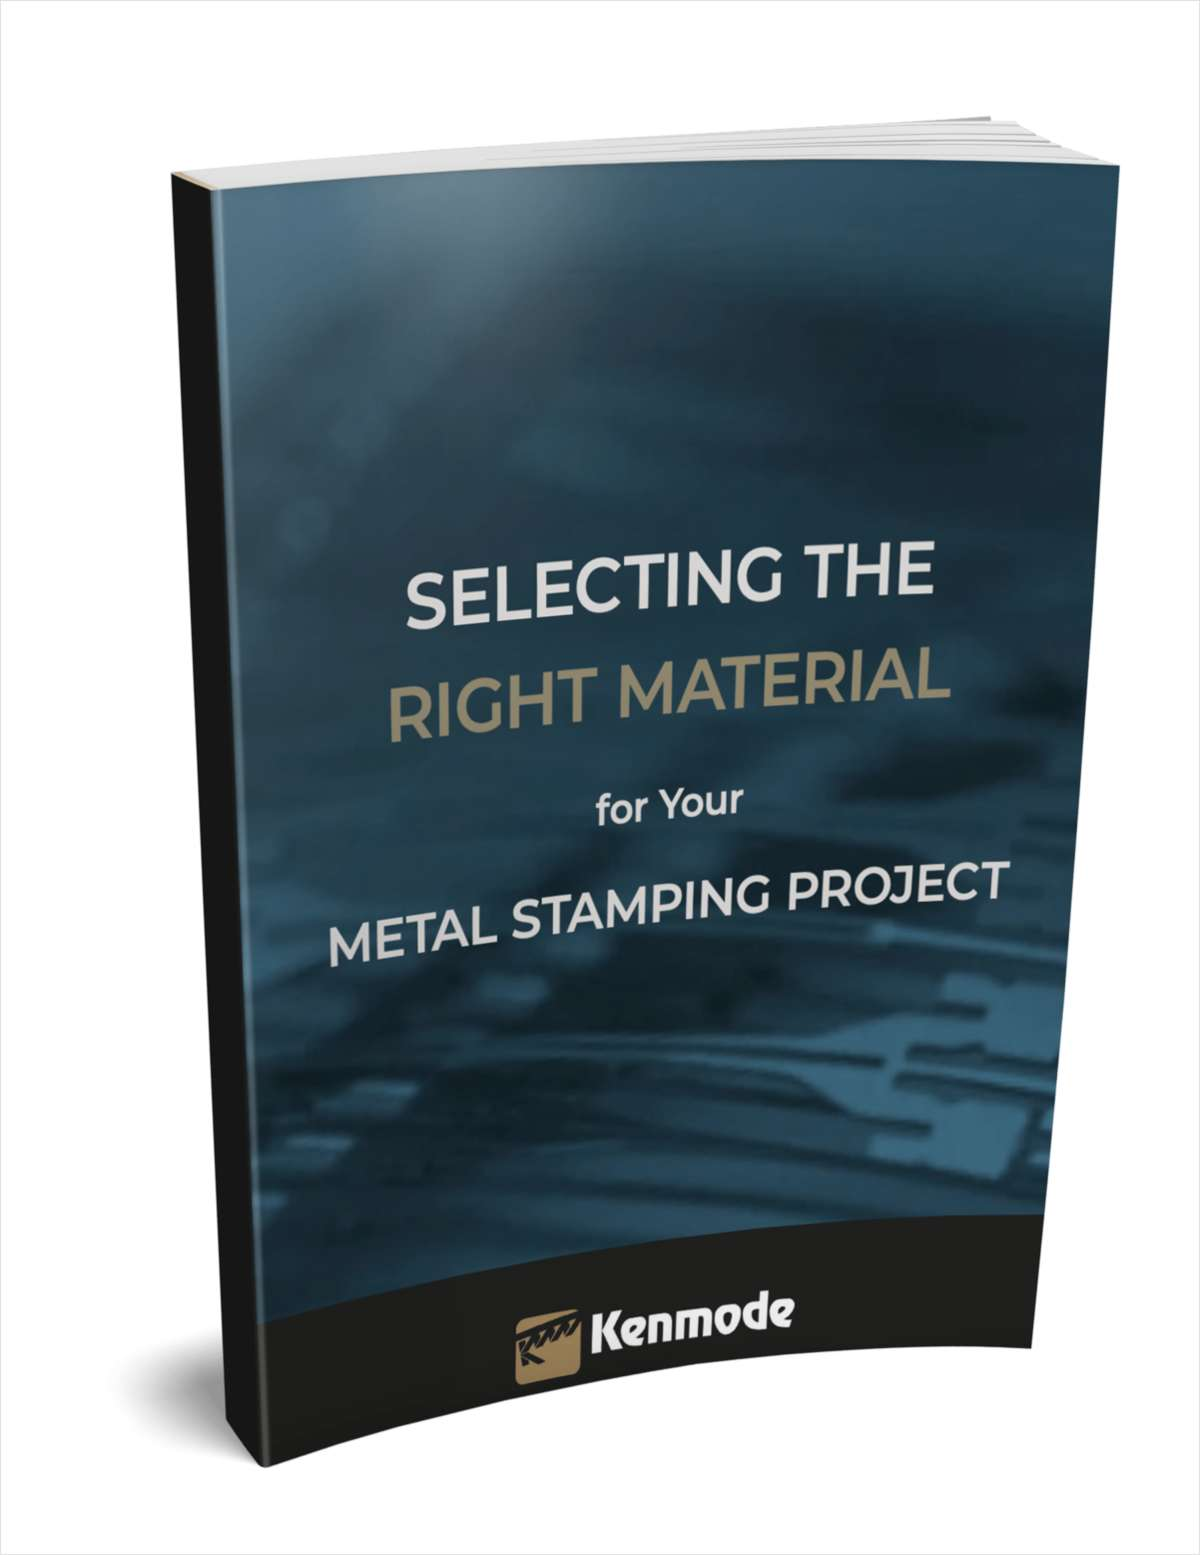 Selecting the Right Material for Your Metal Stamping Project